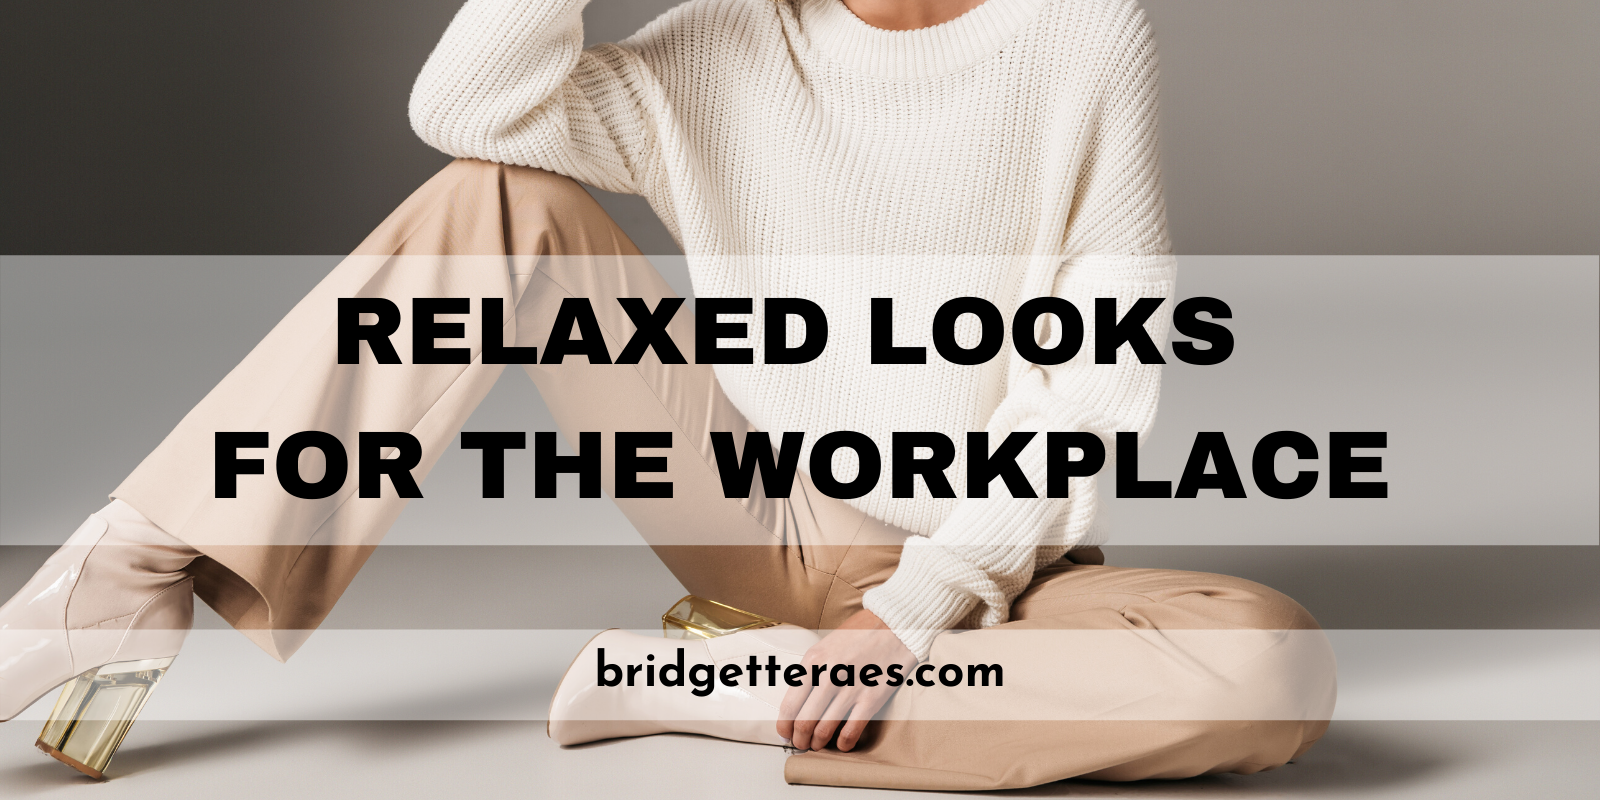 Relaxed Looks for the Workplace